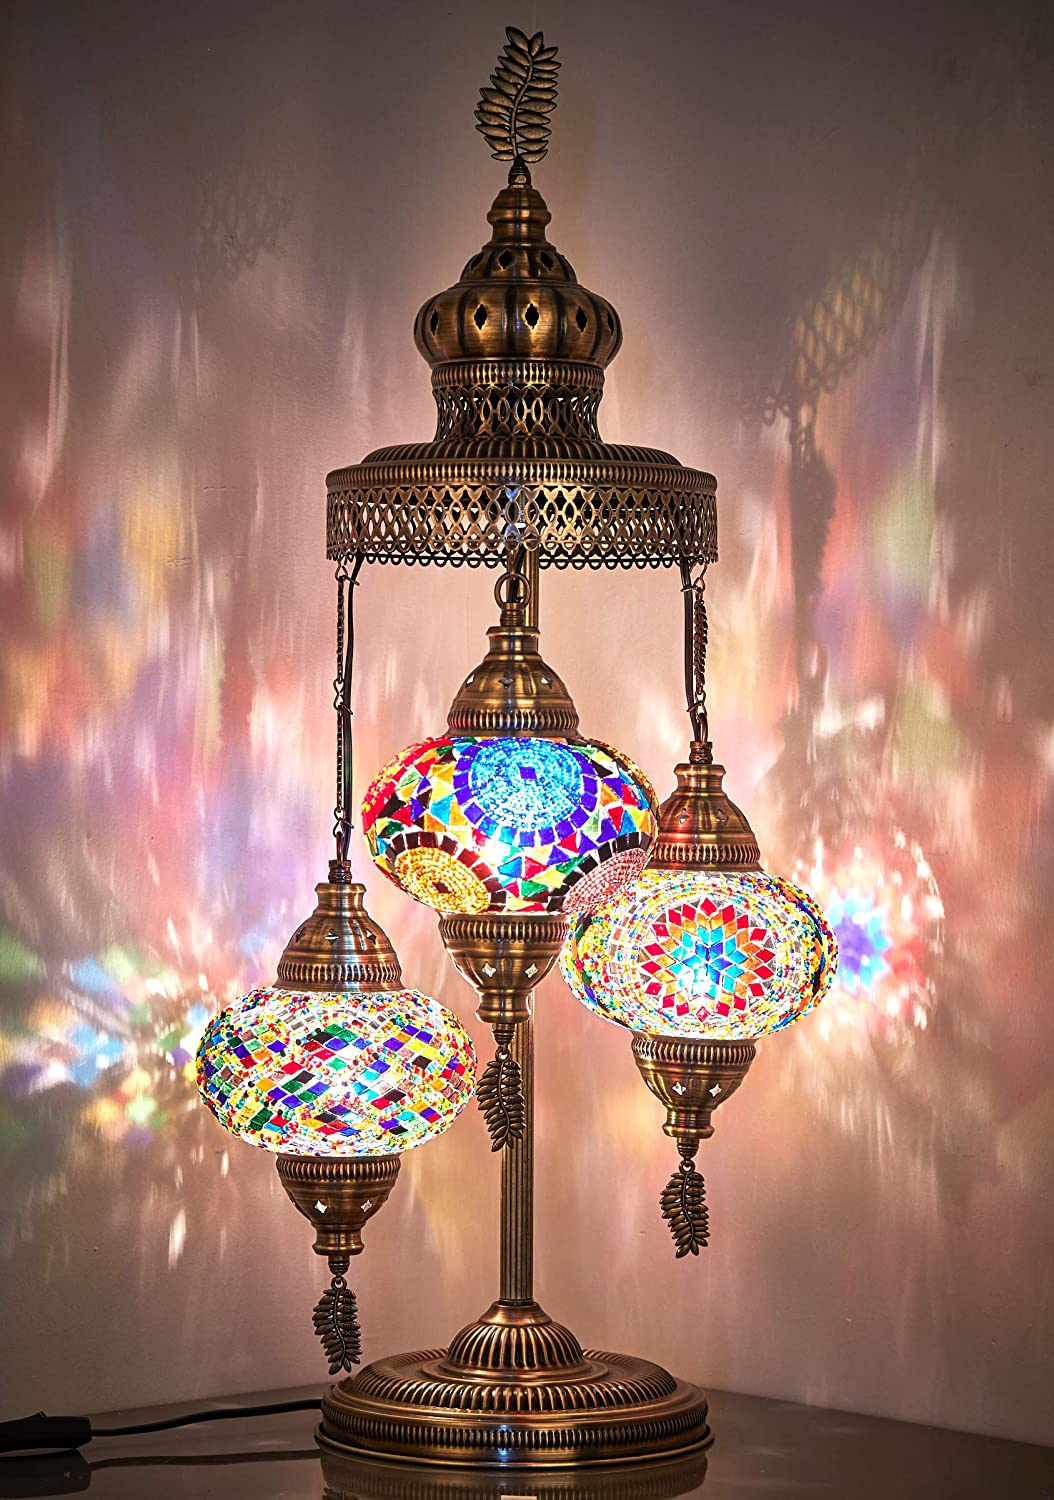 Amazon Com 16 Colors Demmex 2020 3 Big Globes Magnificent Handmade Turkish Moroccan Mosaic Tiffany Table Desk Bedside Lamp Lampshade Night Accent Mood Light For North American Use 31 Height Gift Me Home Improvement